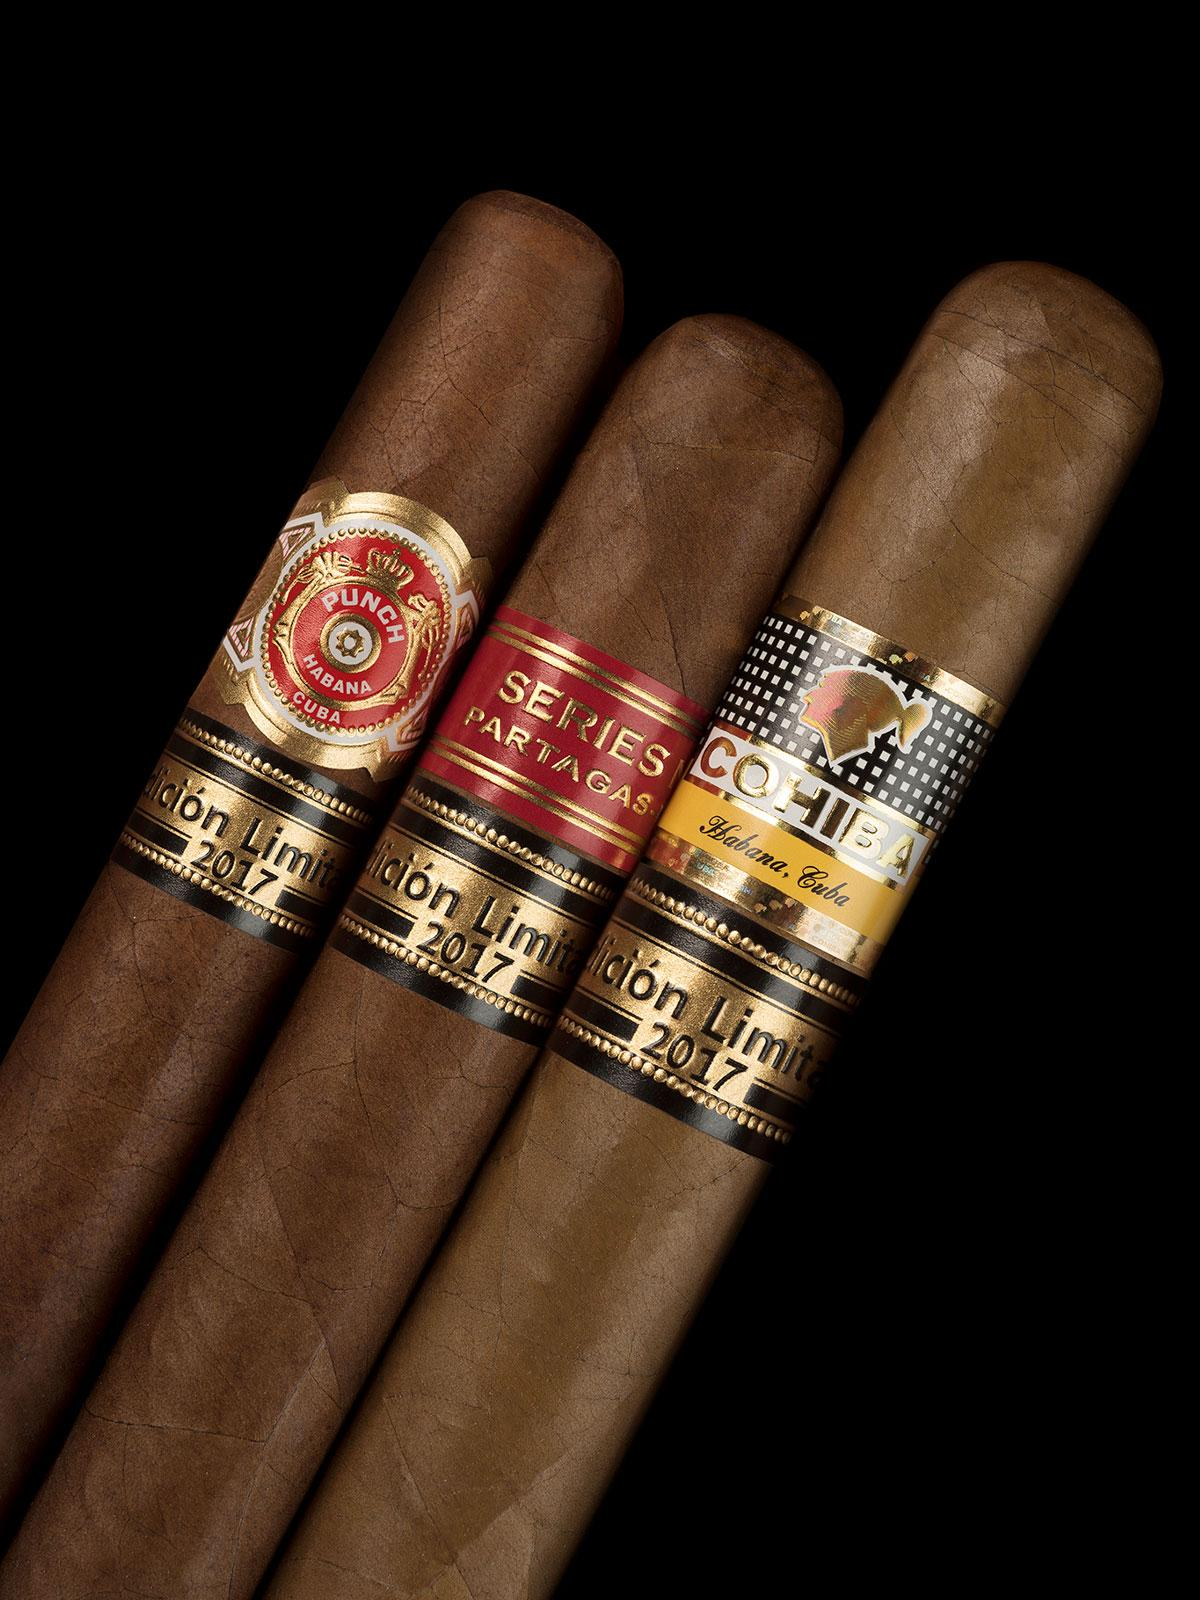 The new lineup of Edición Limitada cigars for 2017, from left: The Punch Regios de Punch, Partagás Serie No. 1 and the Cohiba Talismán.